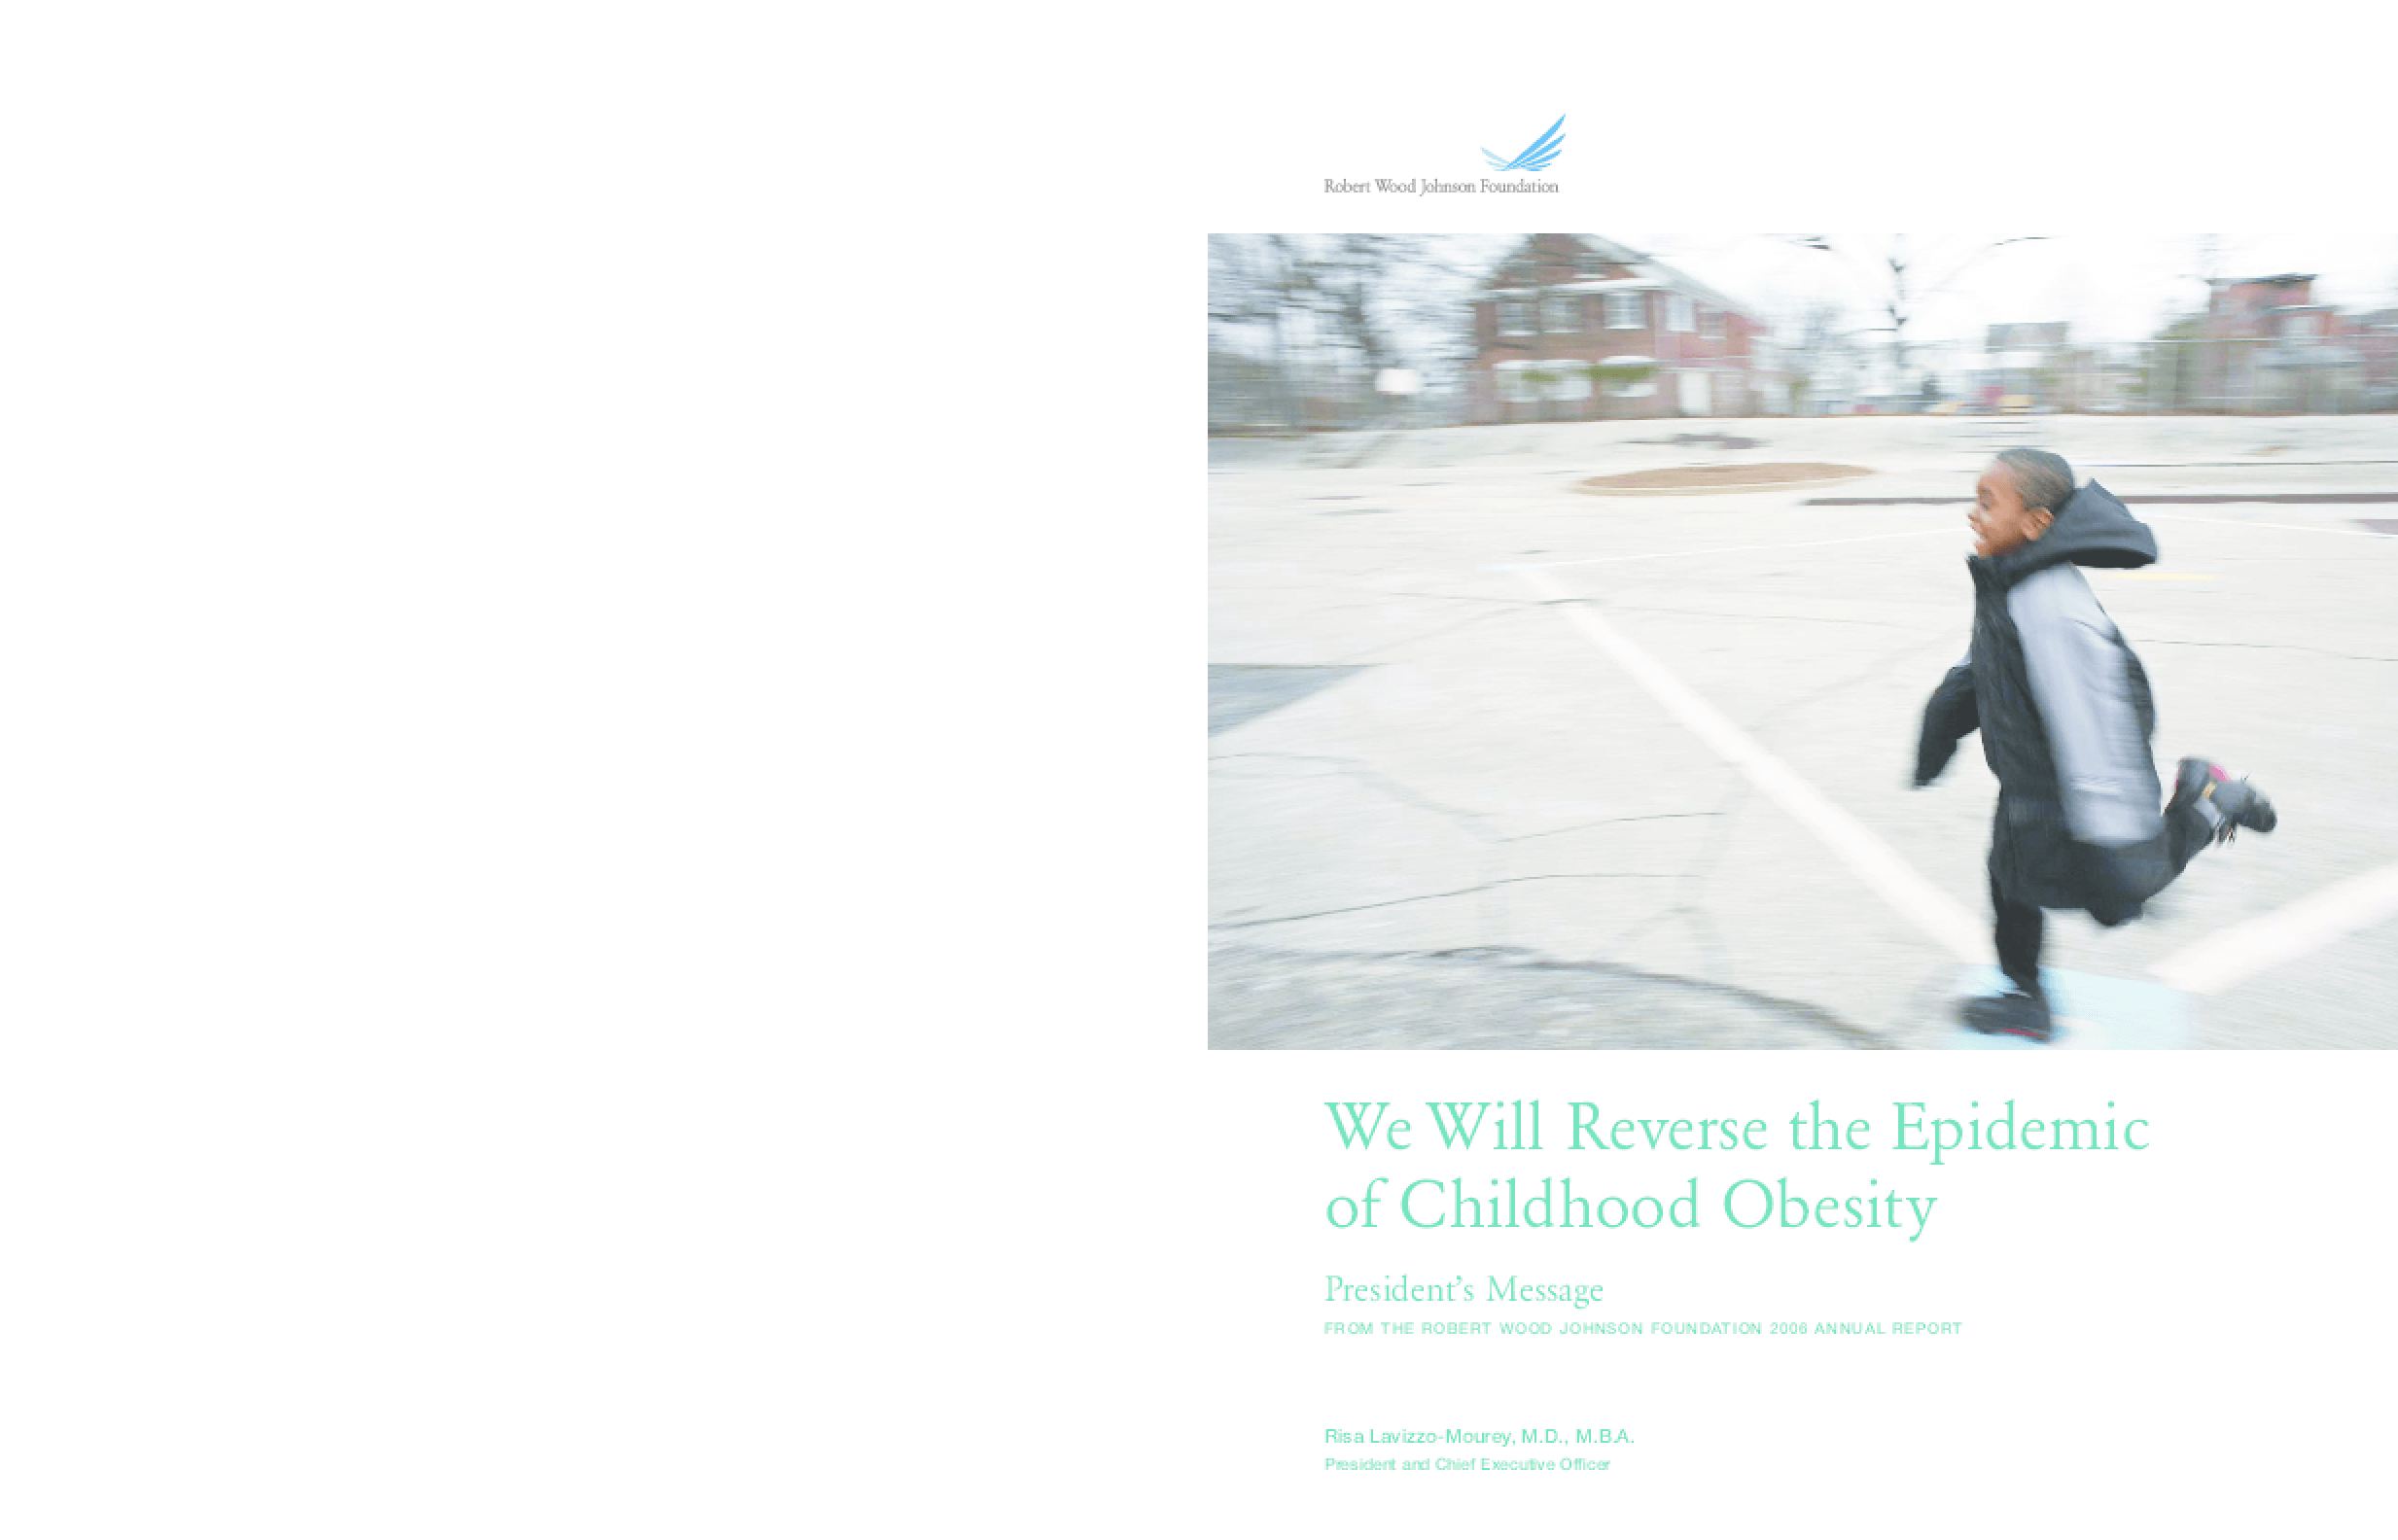 Robert Wood Johnson Foundation - 2006 Annual Report: We Will Reverse the Epidemic of Childhood Obesity